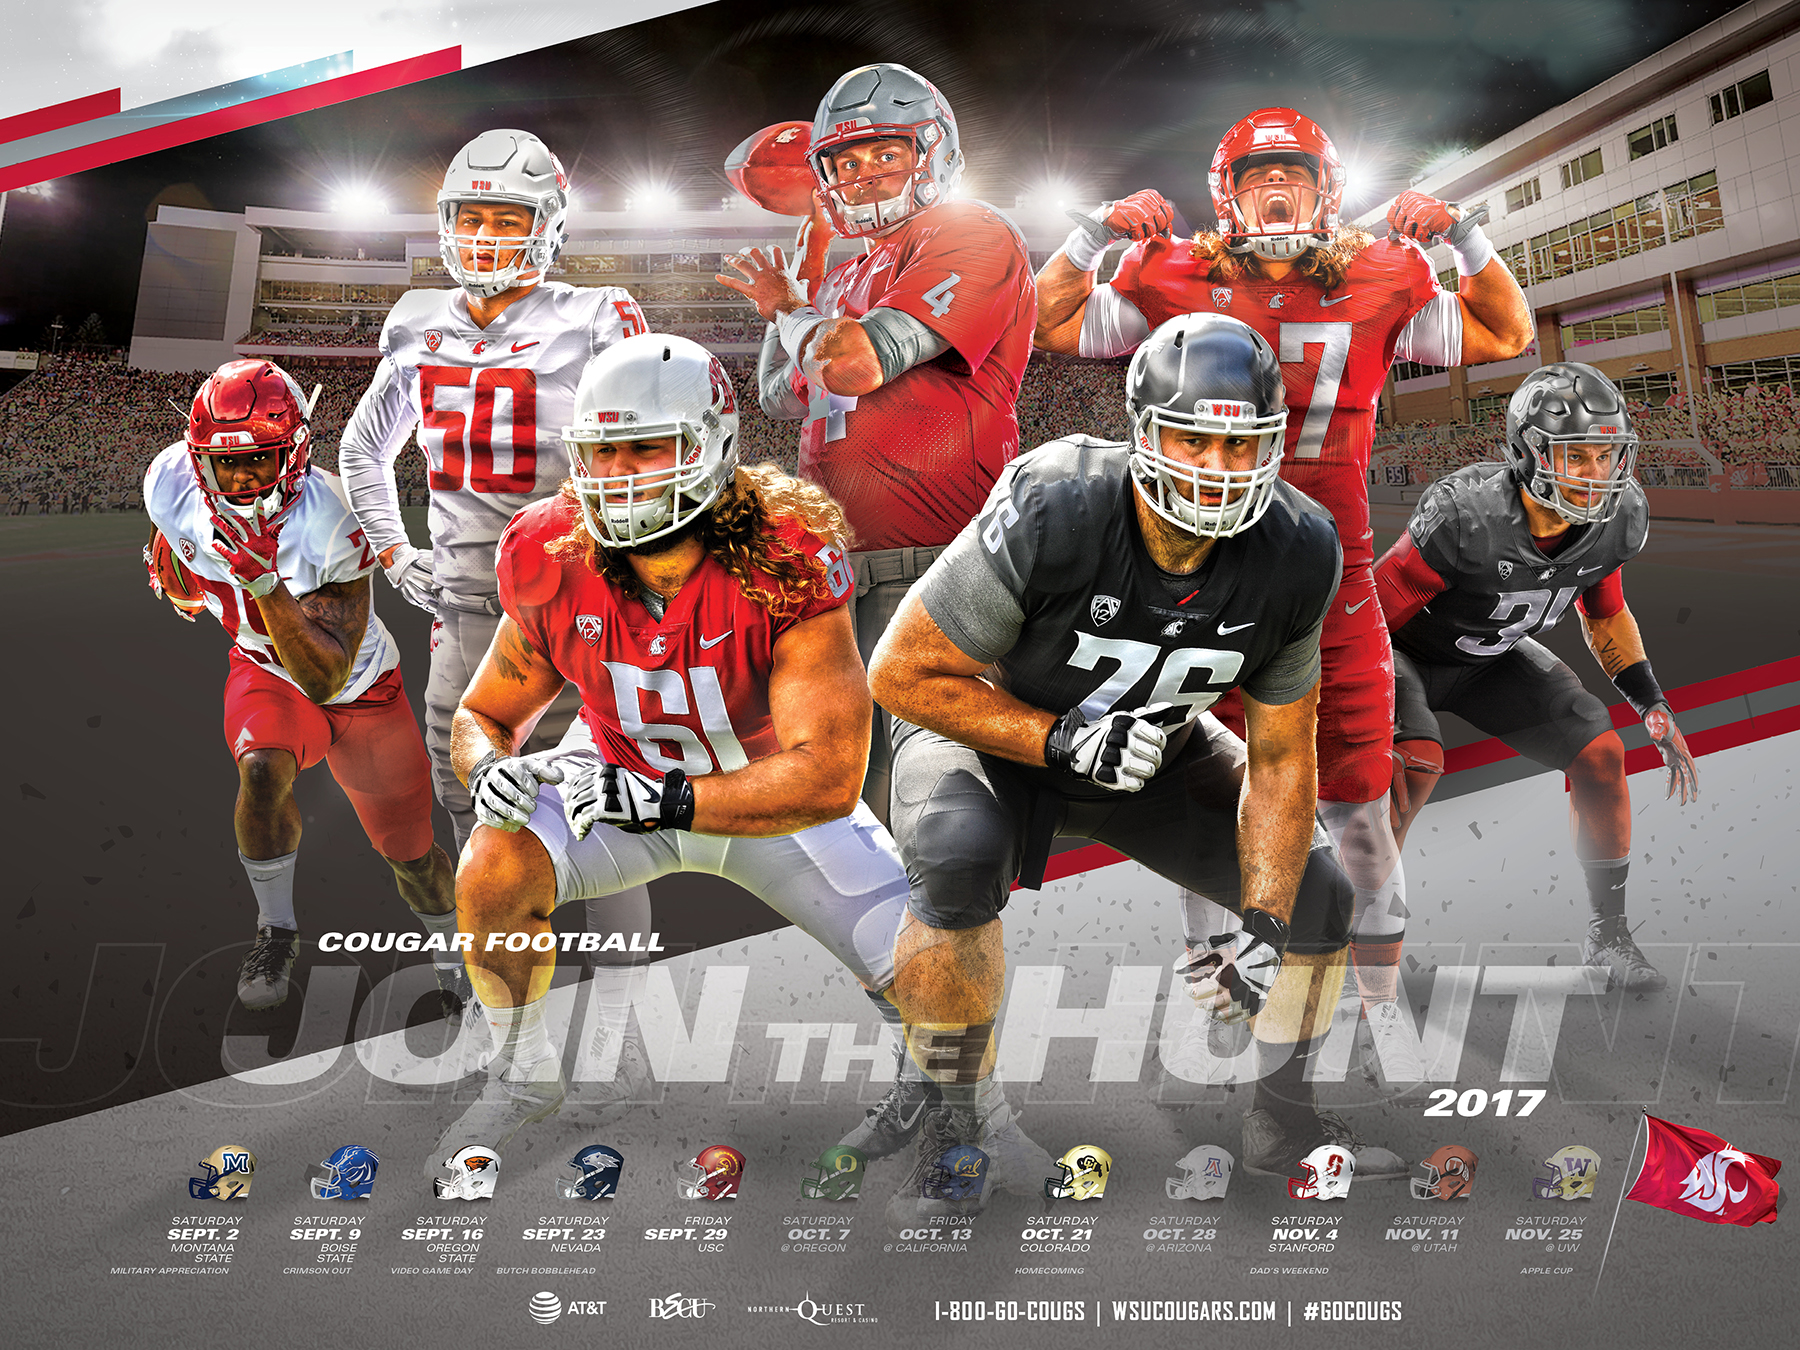 Wsu Football Schedule 2019 2017 18 Posters & Downloads   Washington State University Athletics